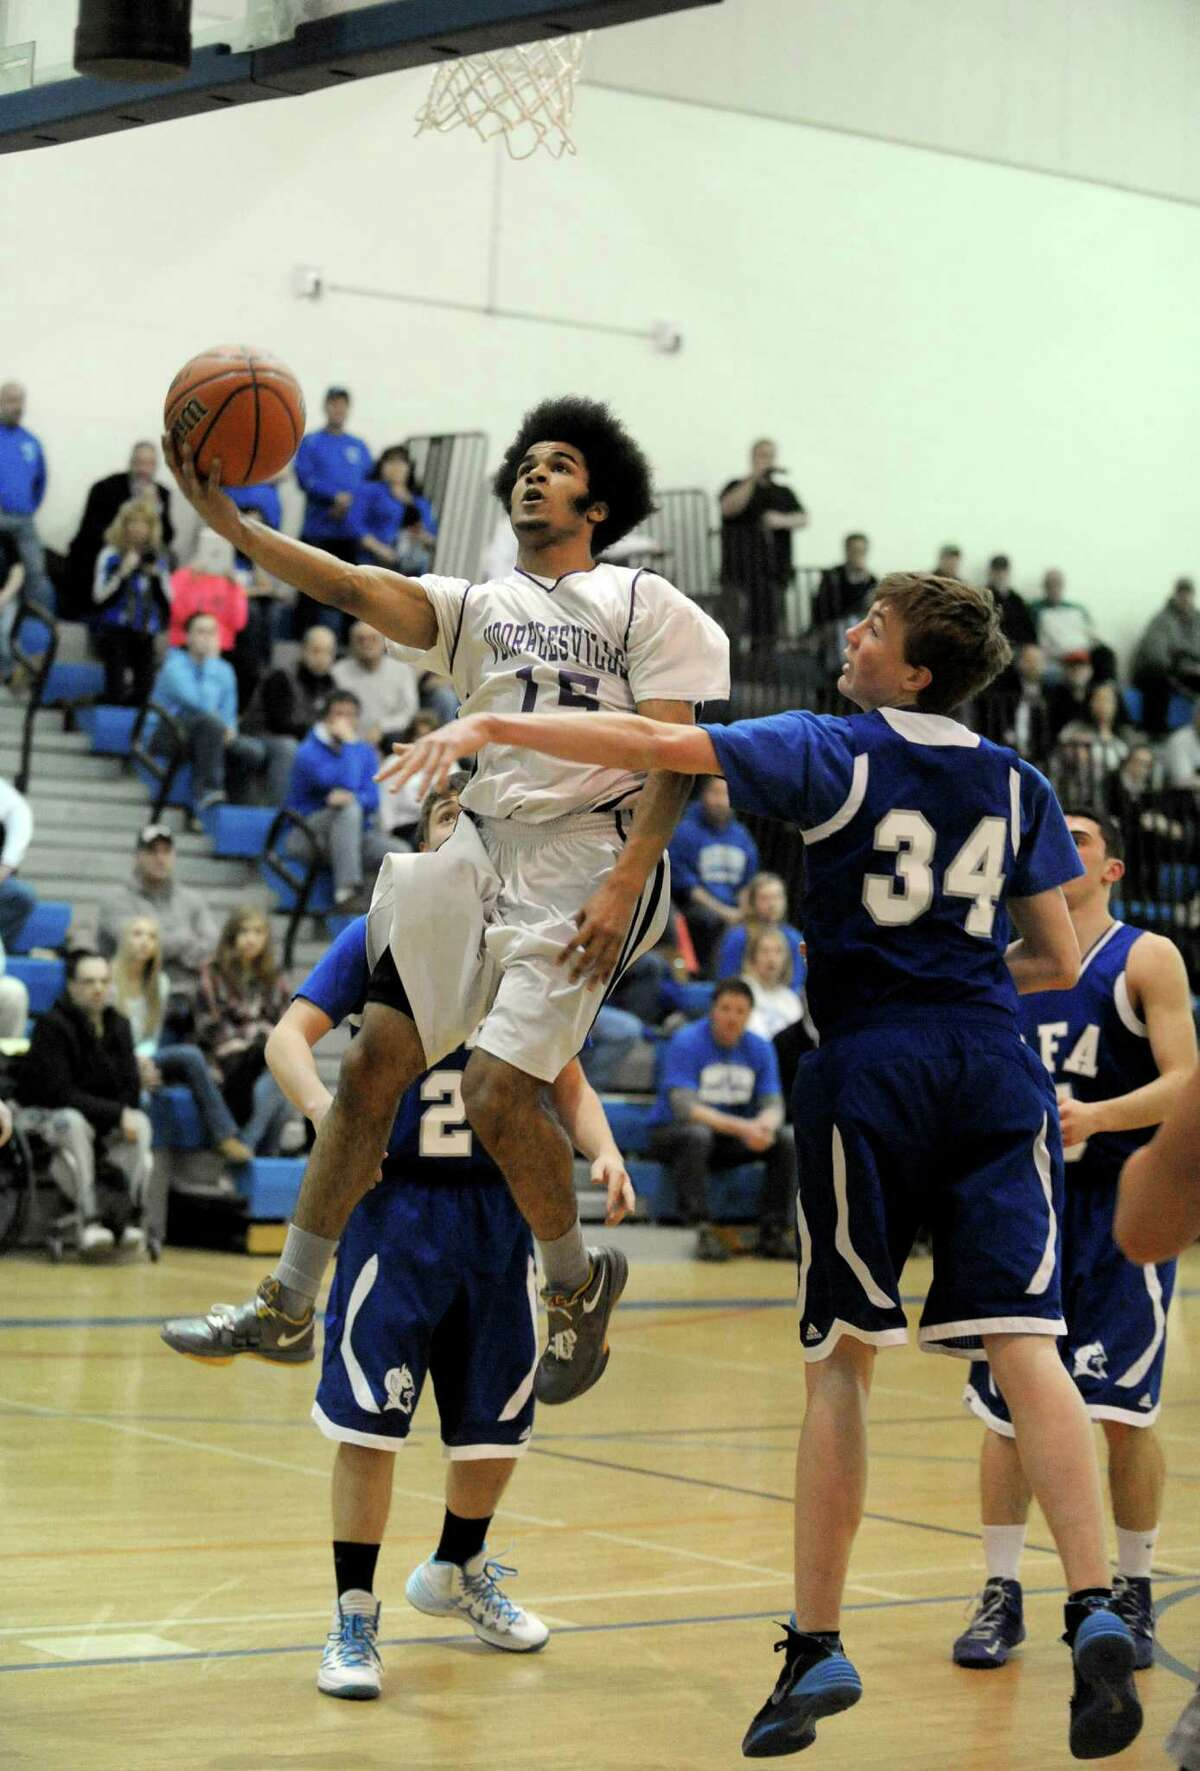 Voorheesville's Noah Crawford goes in for a basket during their Class B state regional boys' basketball game against Ogdensburg Free Academy on Tuesday March 4, 2014 in Saratoga Springs, N.Y. (Michael P. Farrell/Times Union)